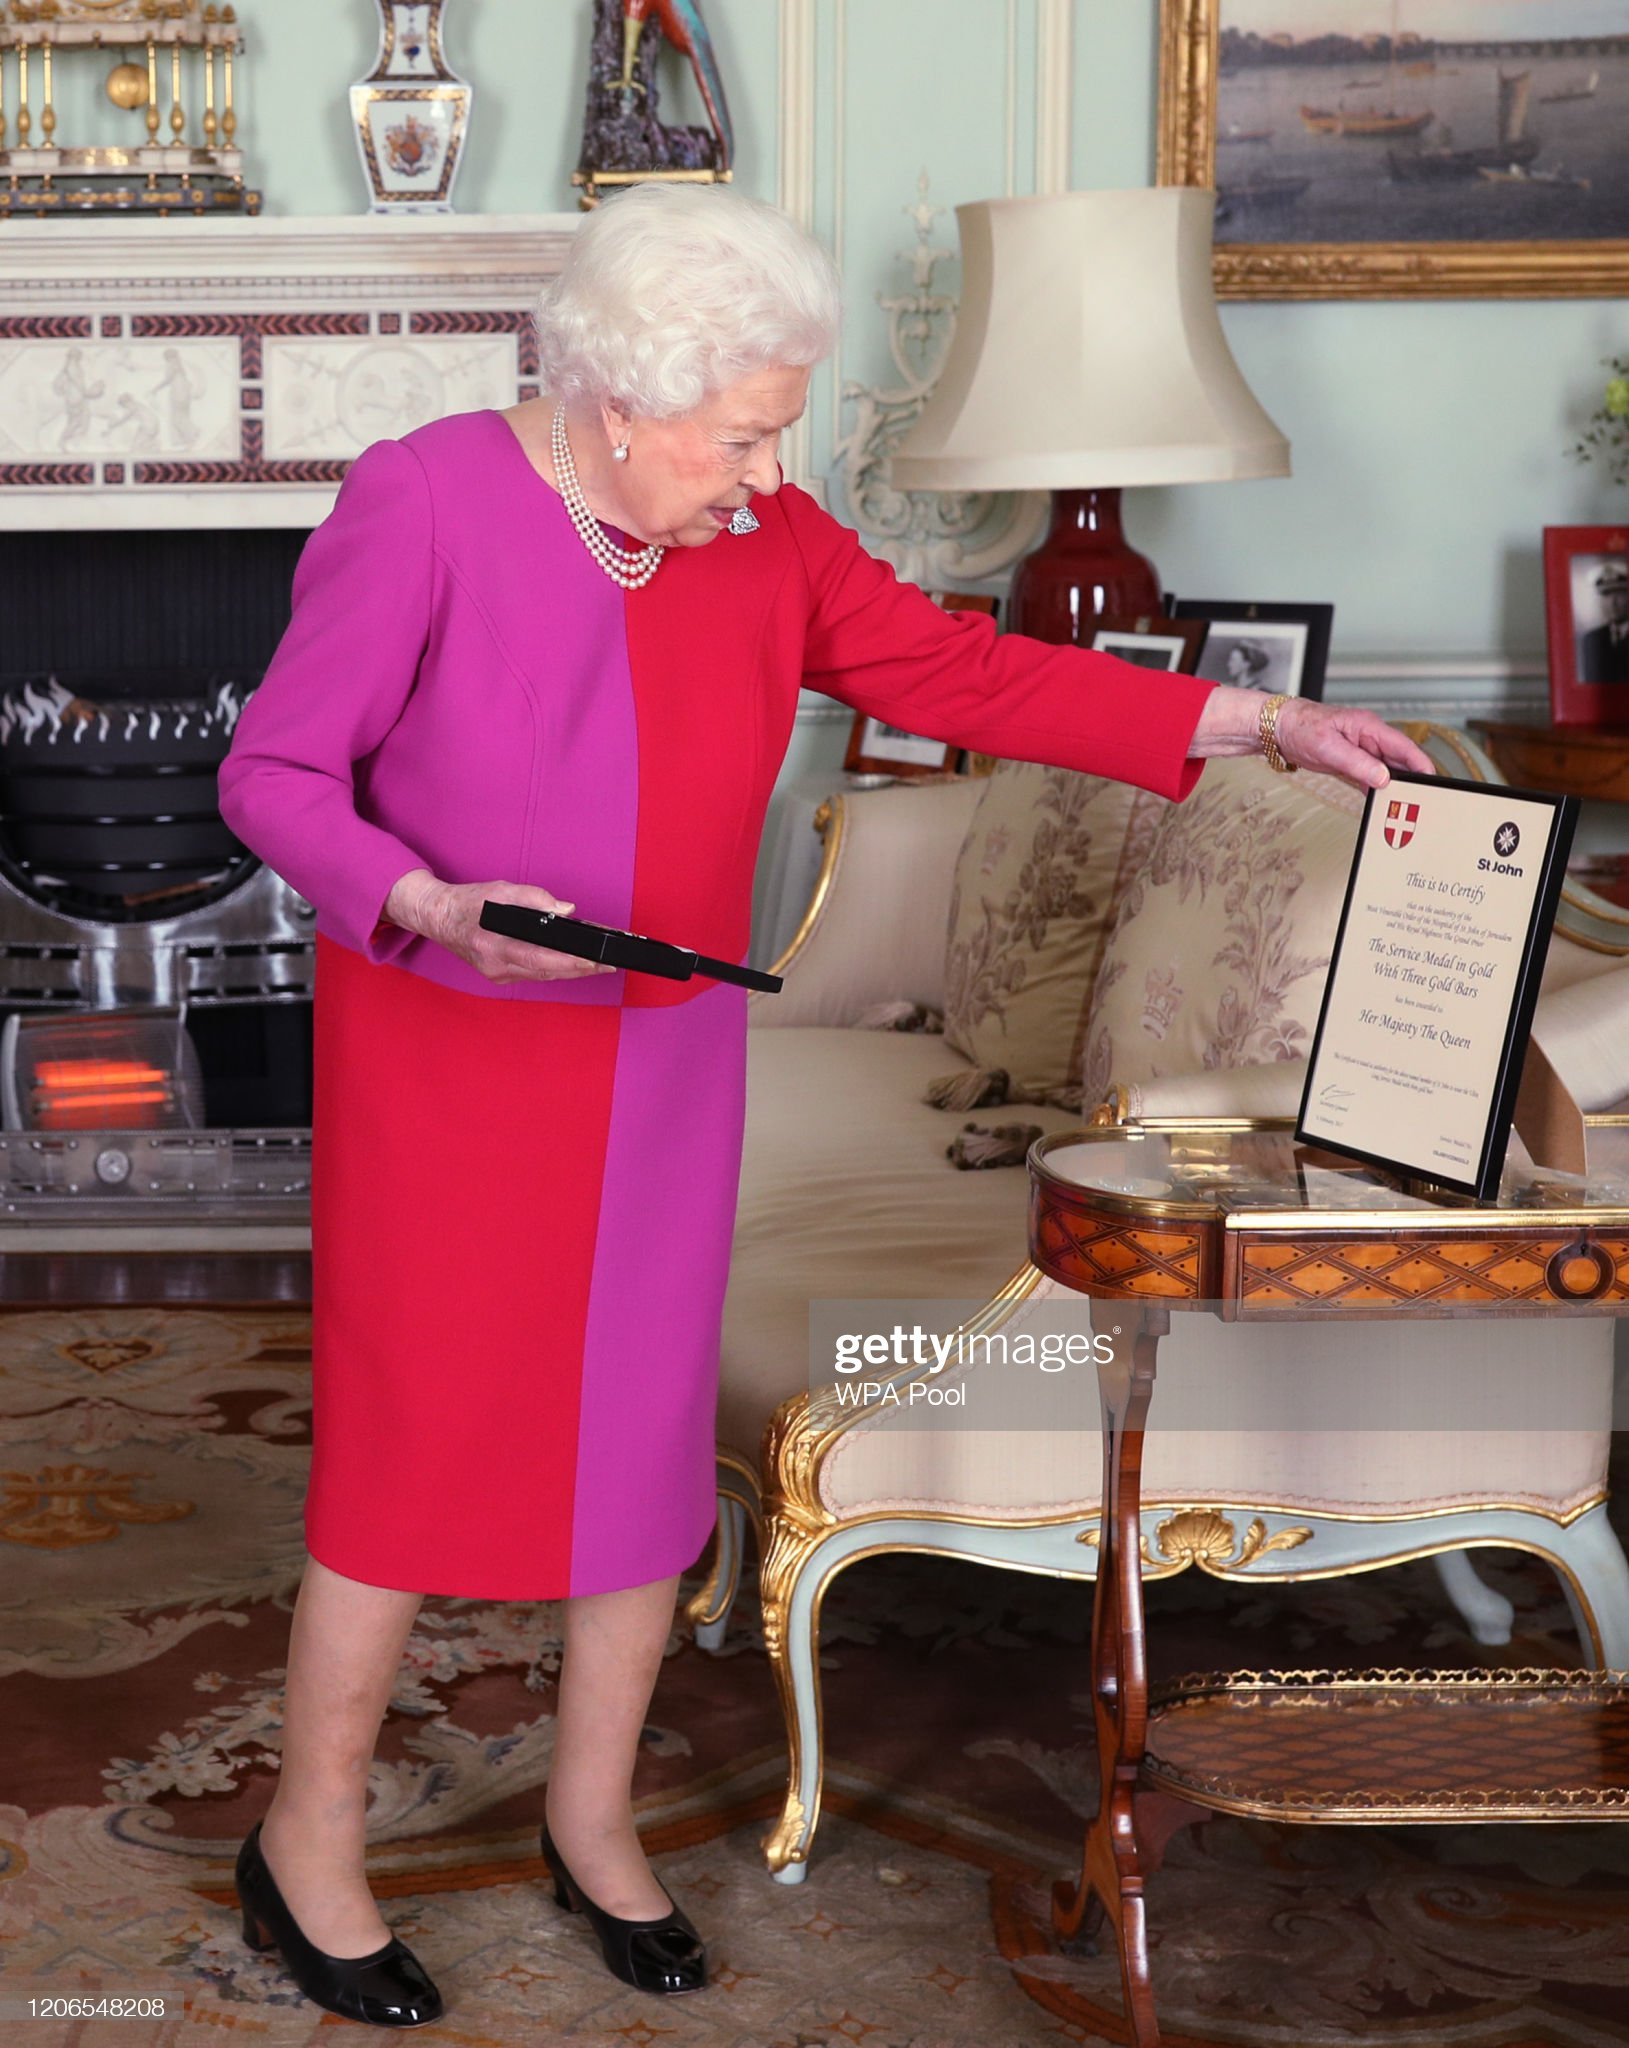 https://media.gettyimages.com/photos/queen-elizabeth-ii-receives-professor-mark-compton-lord-prior-of-the-picture-id1206548208?s=2048x2048